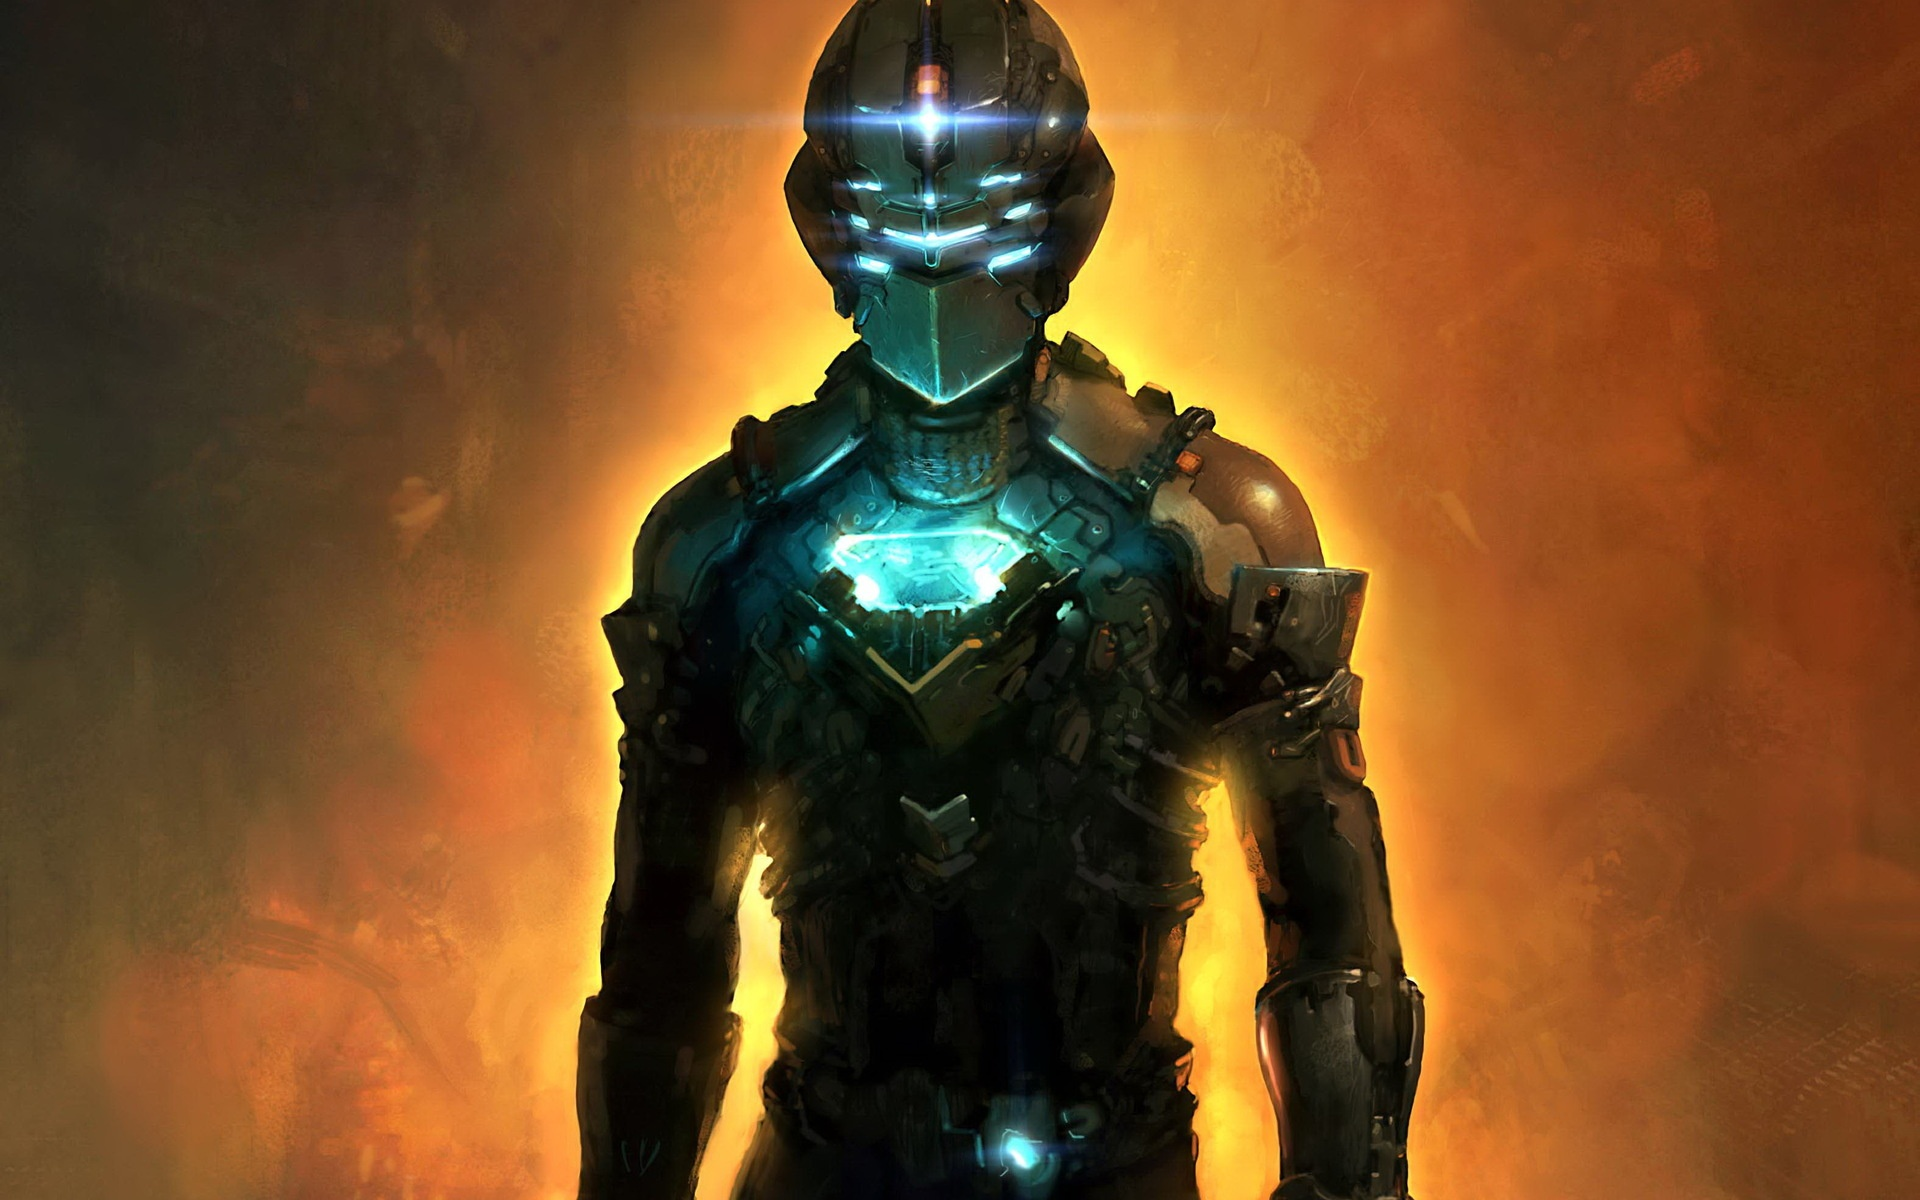 Dead Space 2 Wallpapers Dead Space 2 Backgrounds Dead Space 2 1920x1200